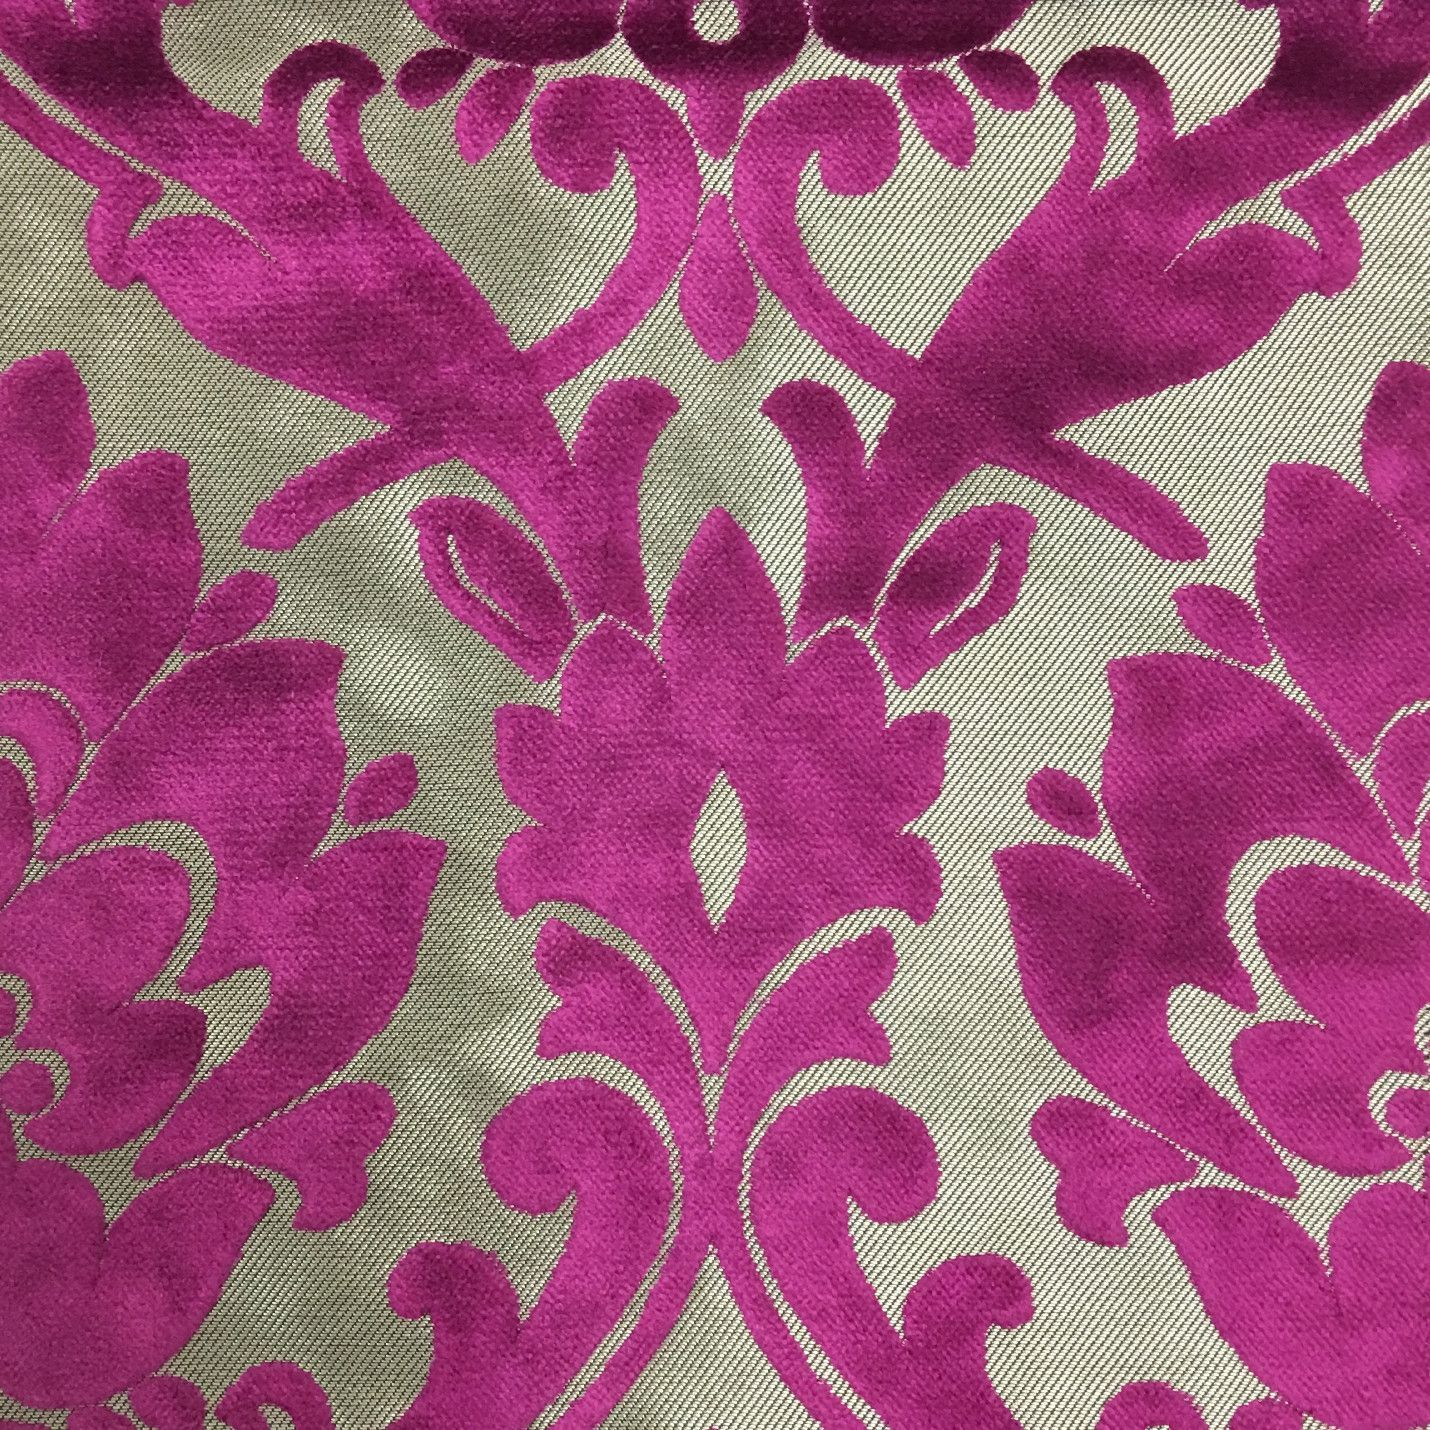 Radcliffe Damask Pattern Lurex Burnout Velvet Upholstery Fabric